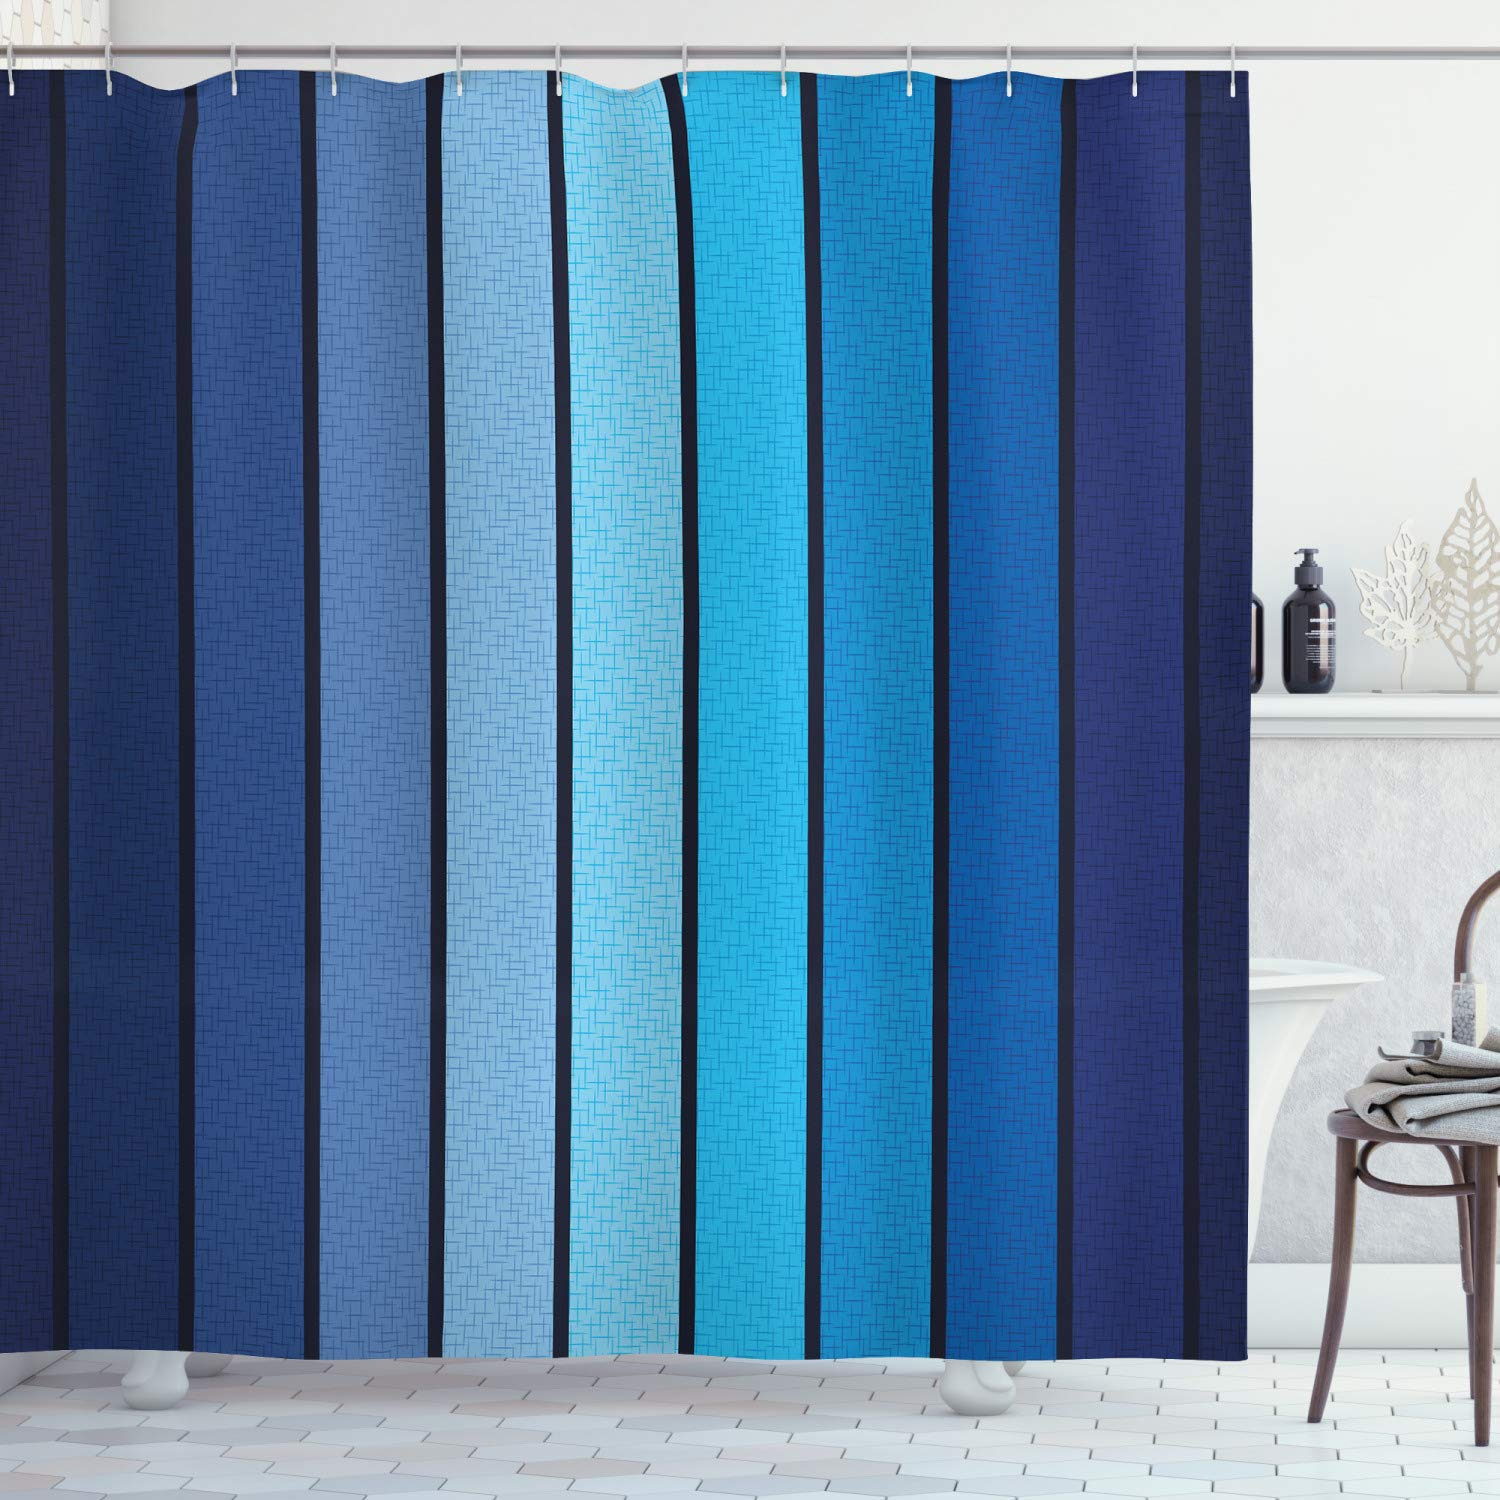 """Ambesonne Navy Shower Curtain, Plaques in Blue Tones with Border Lines with Sketchy Details Print Image, Cloth Fabric Bathroom Decor Set with Hooks, 75"""" Long, Blue"""